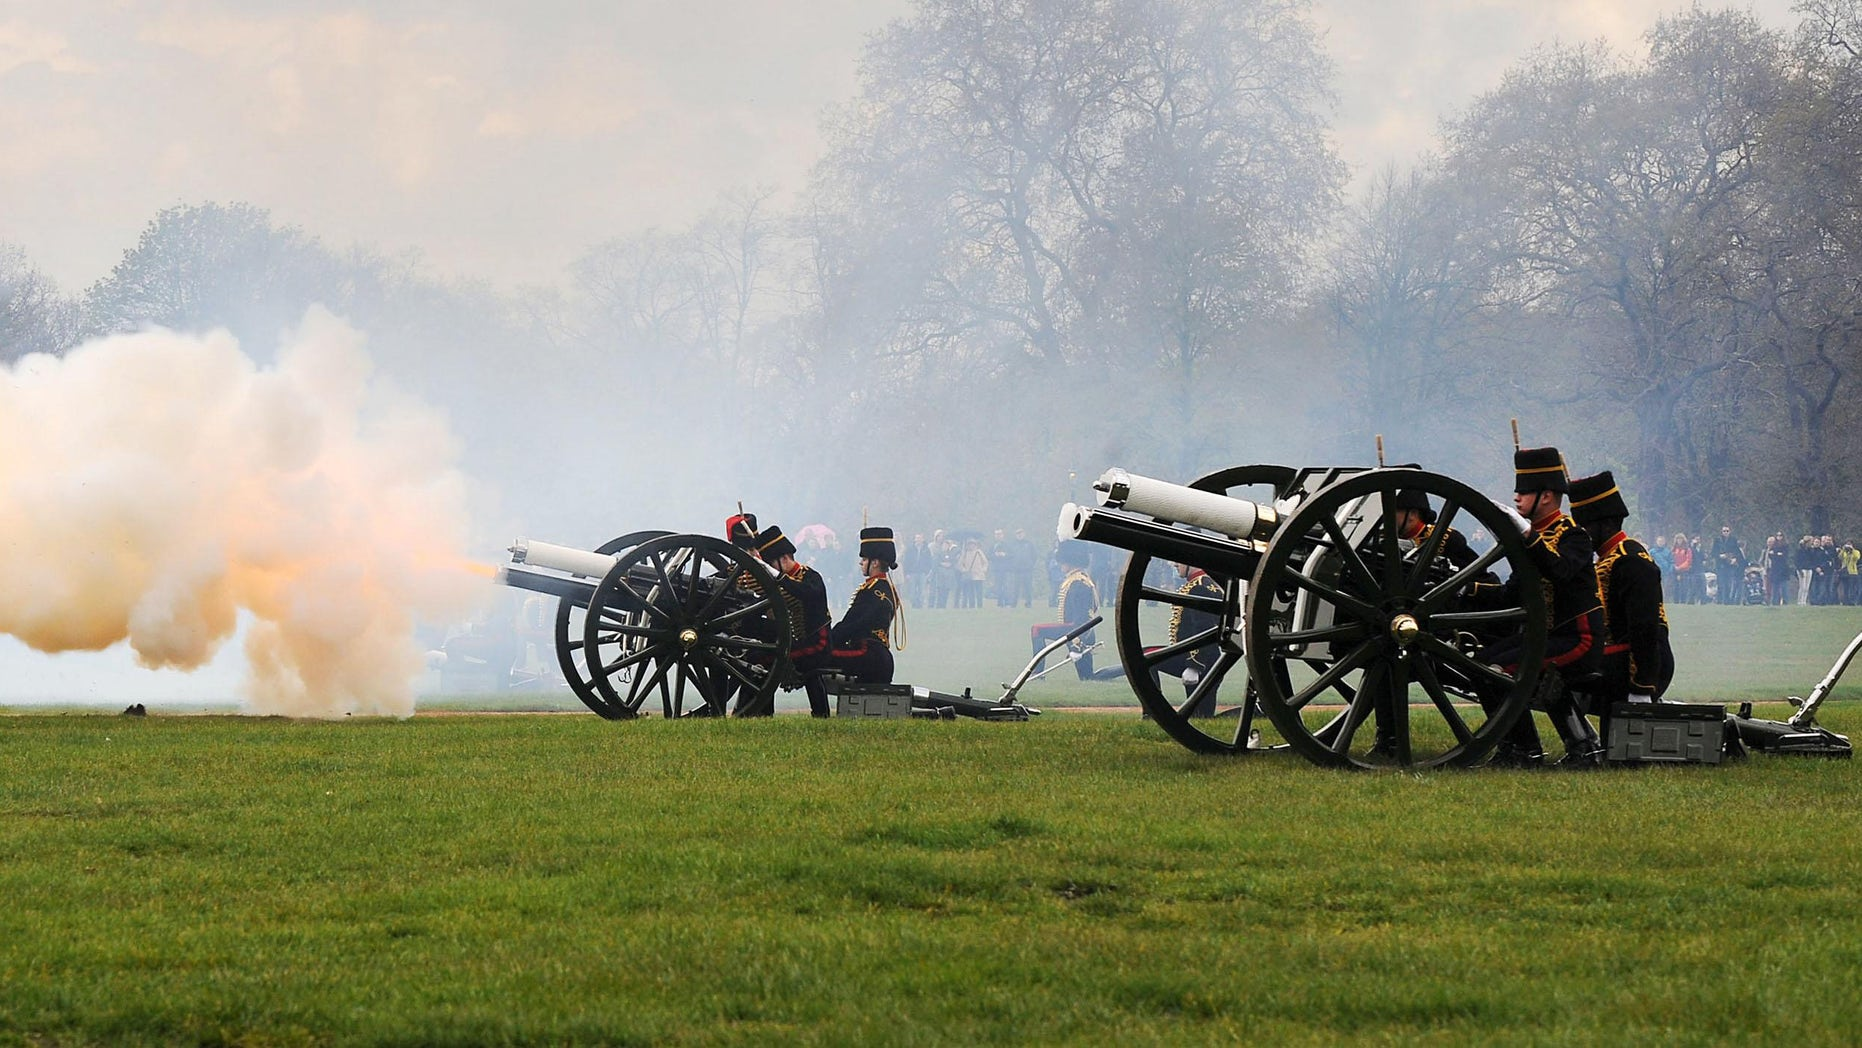 This photo made available by Britain's Ministry of Defence shows the King's Troop Royal Horse Artillery firing a 41 gun salute to mark Queen Elizabeth II's 86th birthday in Hyde Park, London, Saturday April 21, 2012. (AP Photo/Ministry of Defence/RLC, Sergeant Steven Hughes)